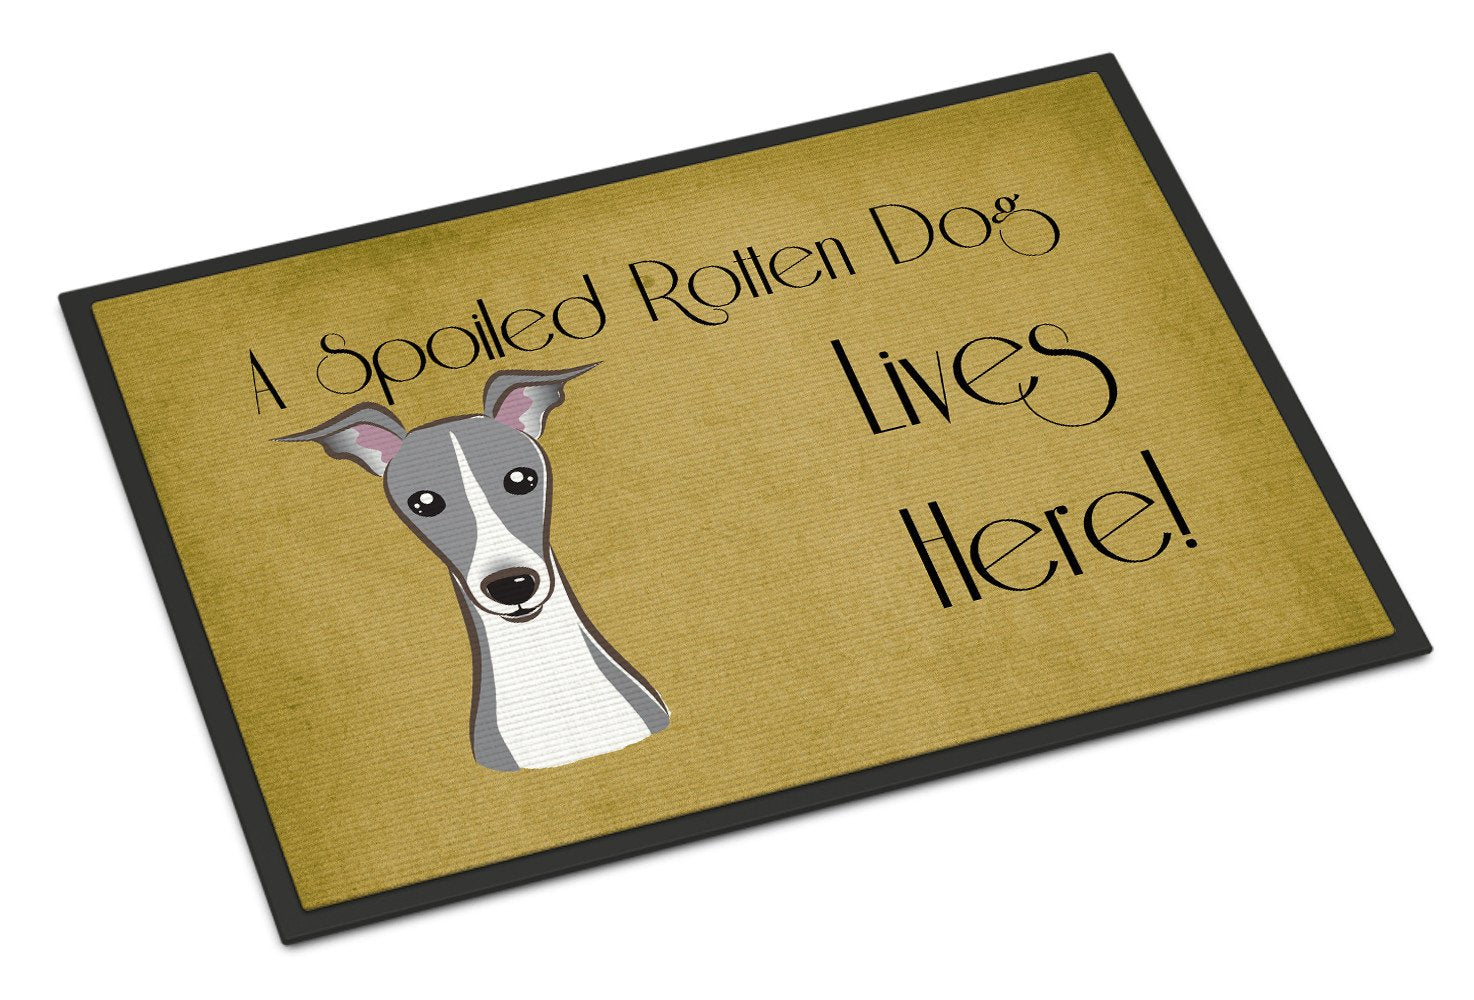 Italian Greyhound Spoiled Dog Lives Here Indoor or Outdoor Mat 18x27 BB1484MAT - the-store.com